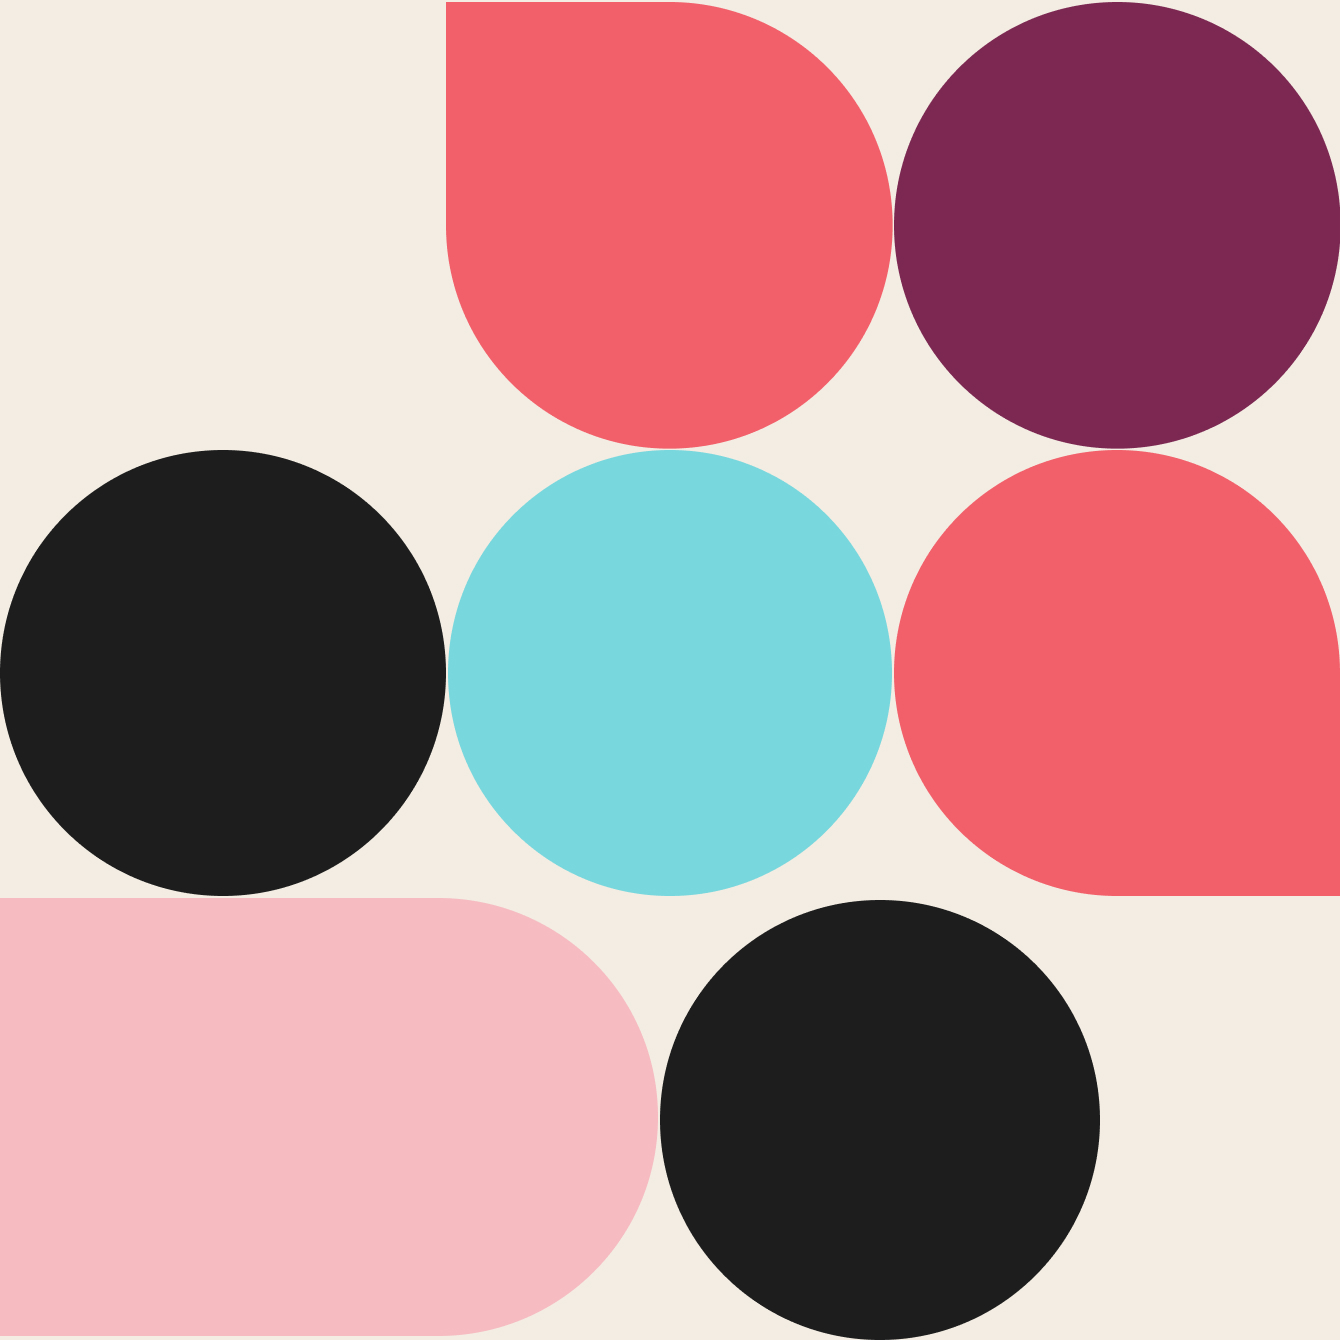 colourful shapes with Slack logo